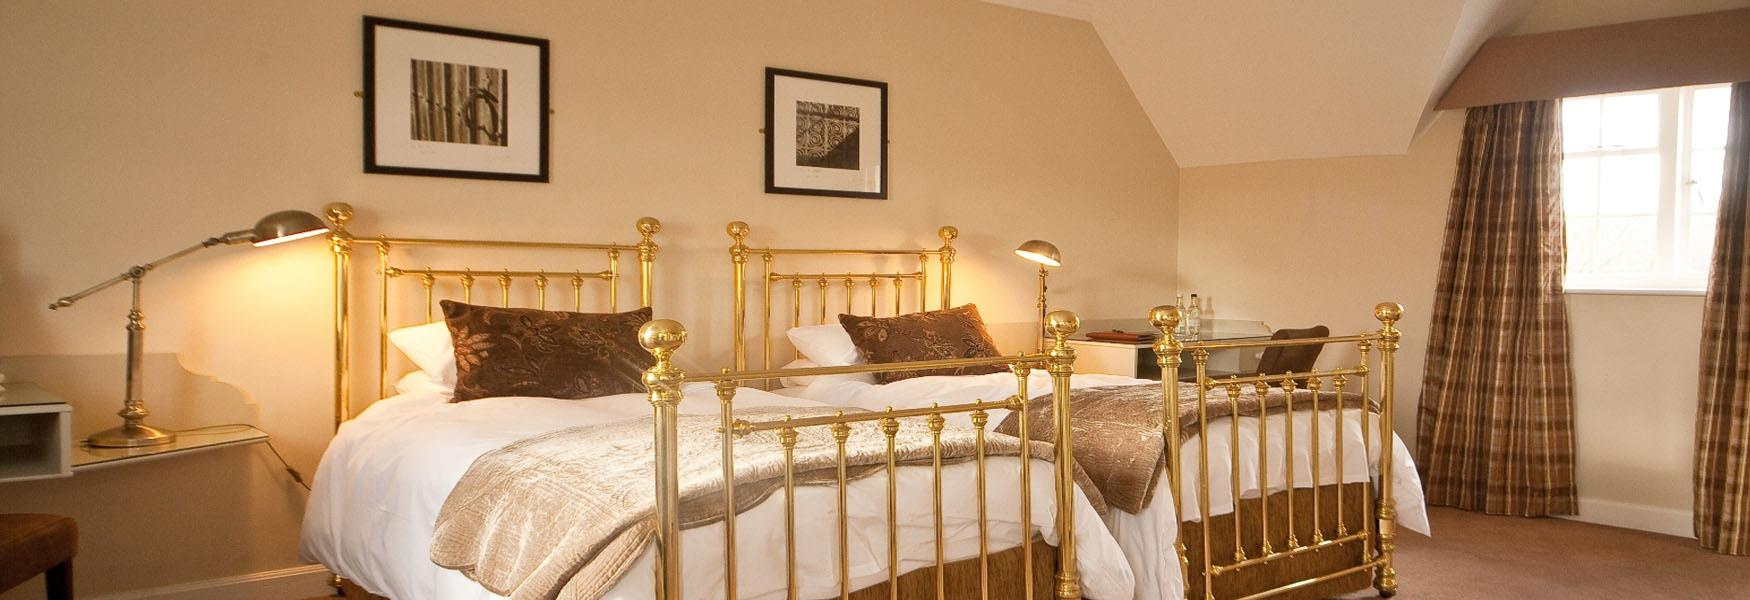 Bed and breakfast accommodation at Leeds Castle